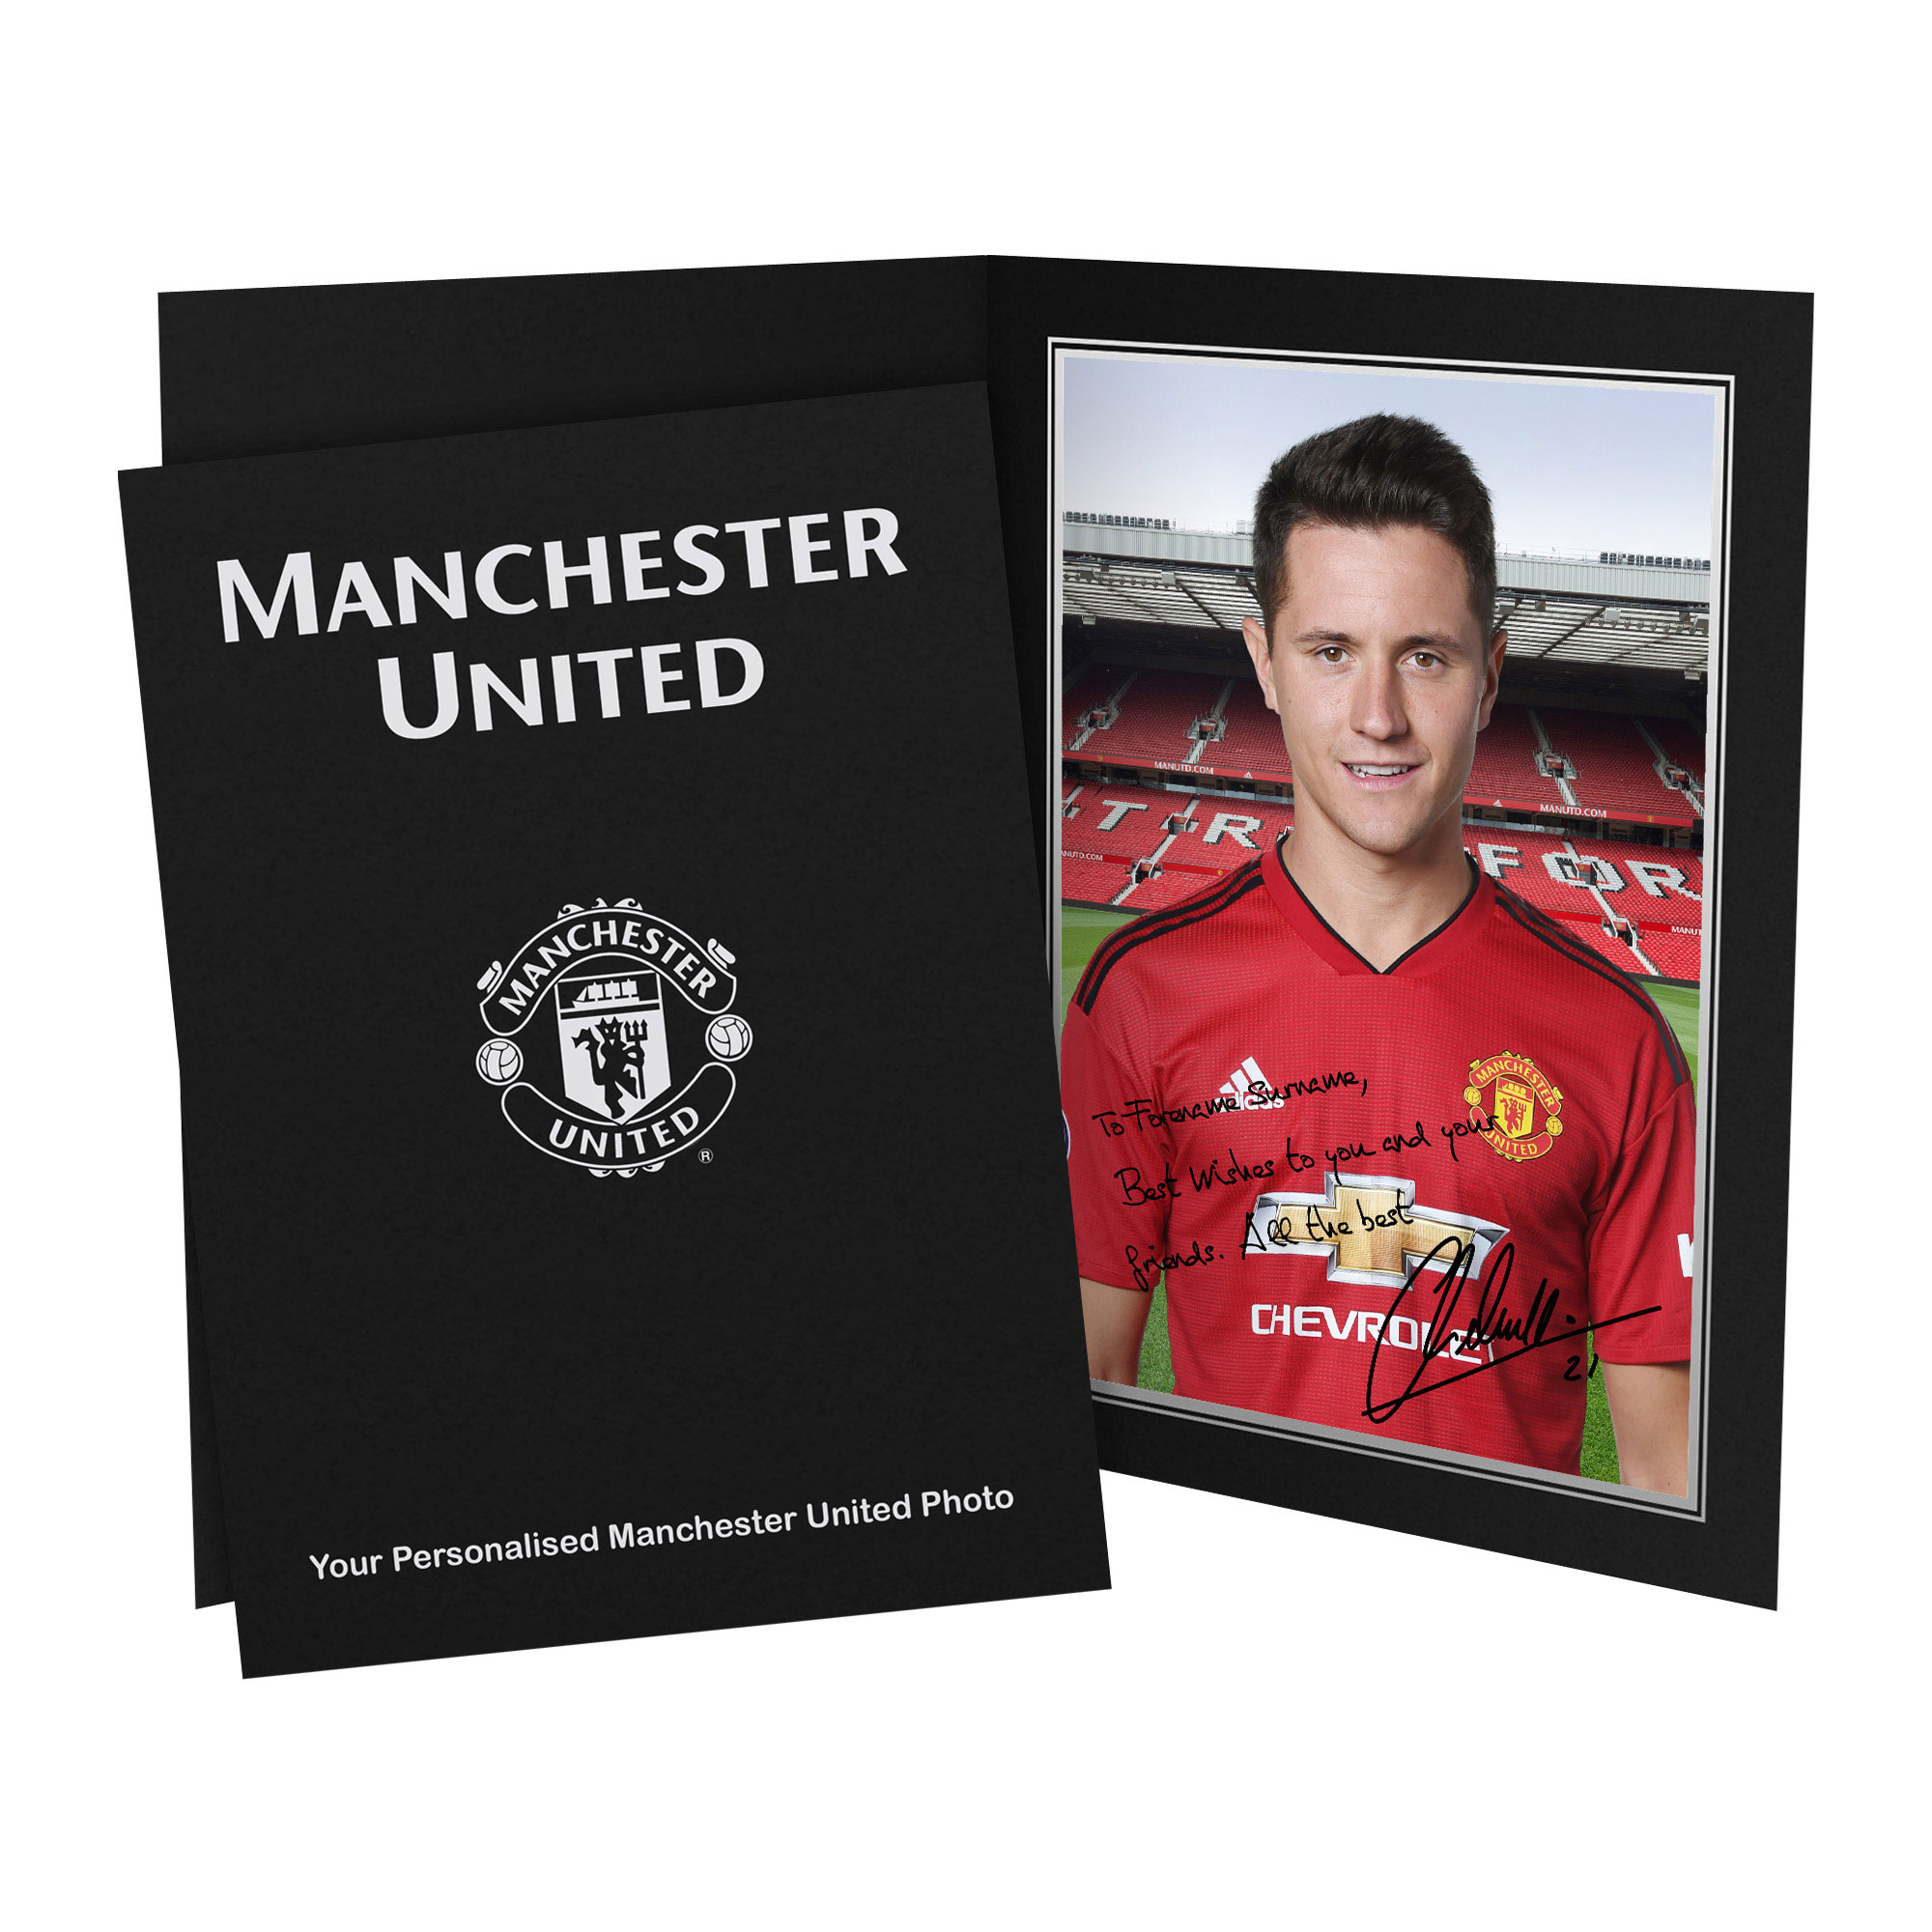 Manchester United Personalised Signature Photo in Presentation Folder - Herrera